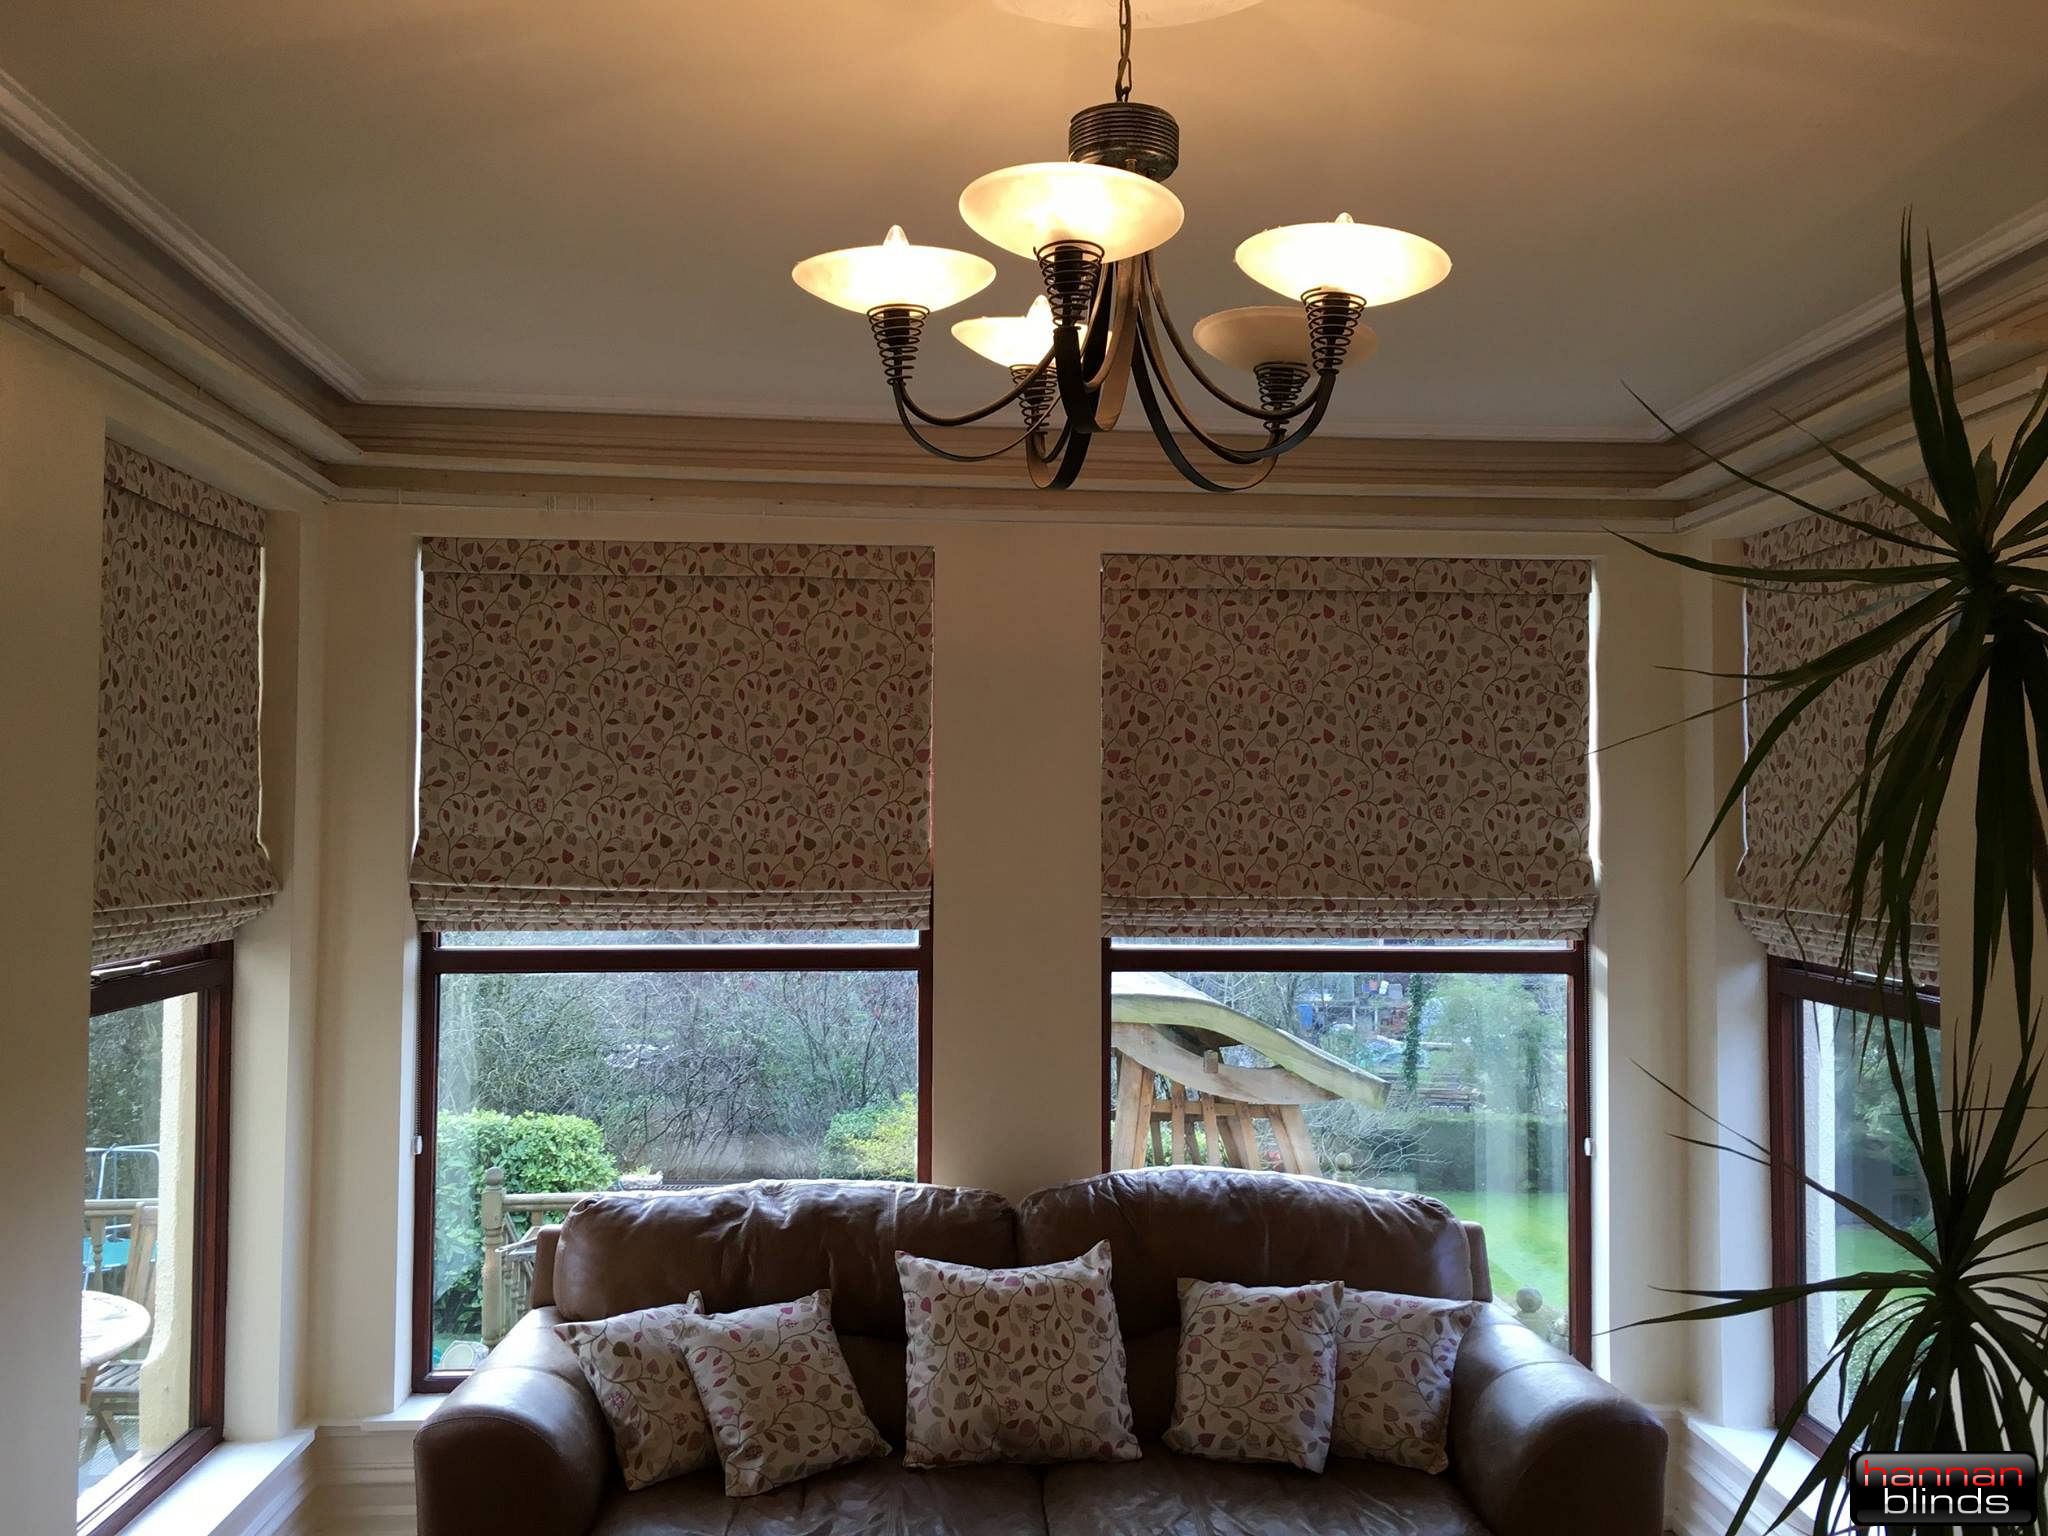 Soft Roman Blinds & Matching Cushions in a Lovely Sitting area